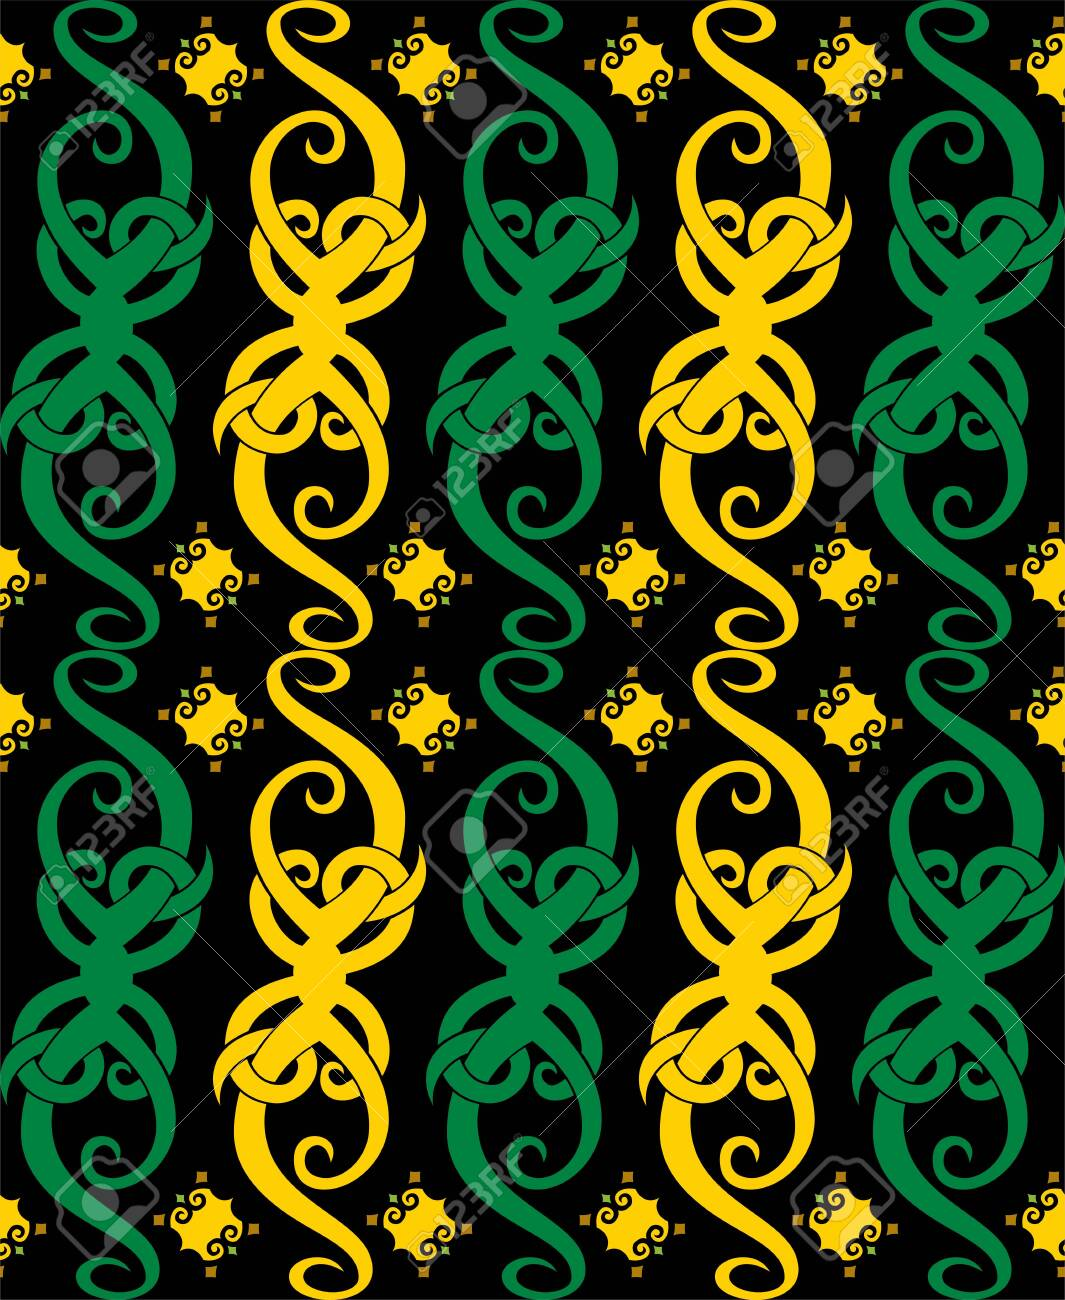 Background Motif Dayak : background, motif, dayak, Seamless, Patern, Dayak, Ethnic, Pattern.traditional, Indonesian.., Royalty, Cliparts,, Vectors,, Stock, Illustration., Image, 128049525.